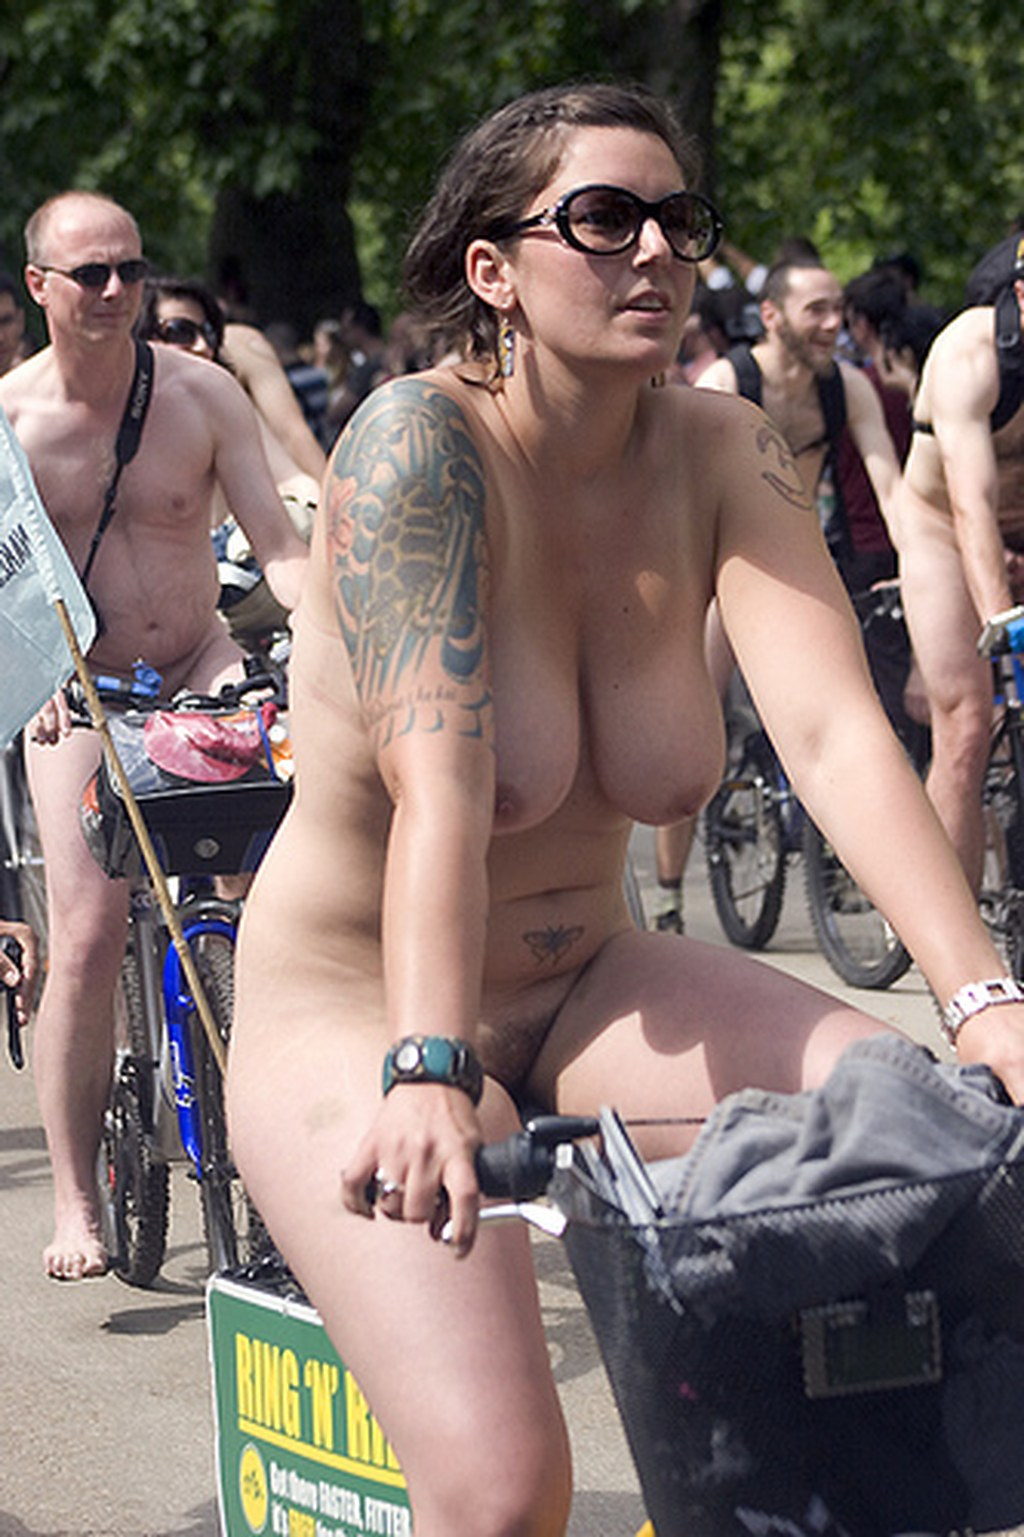 Are Girls xxx on bicycle useful message